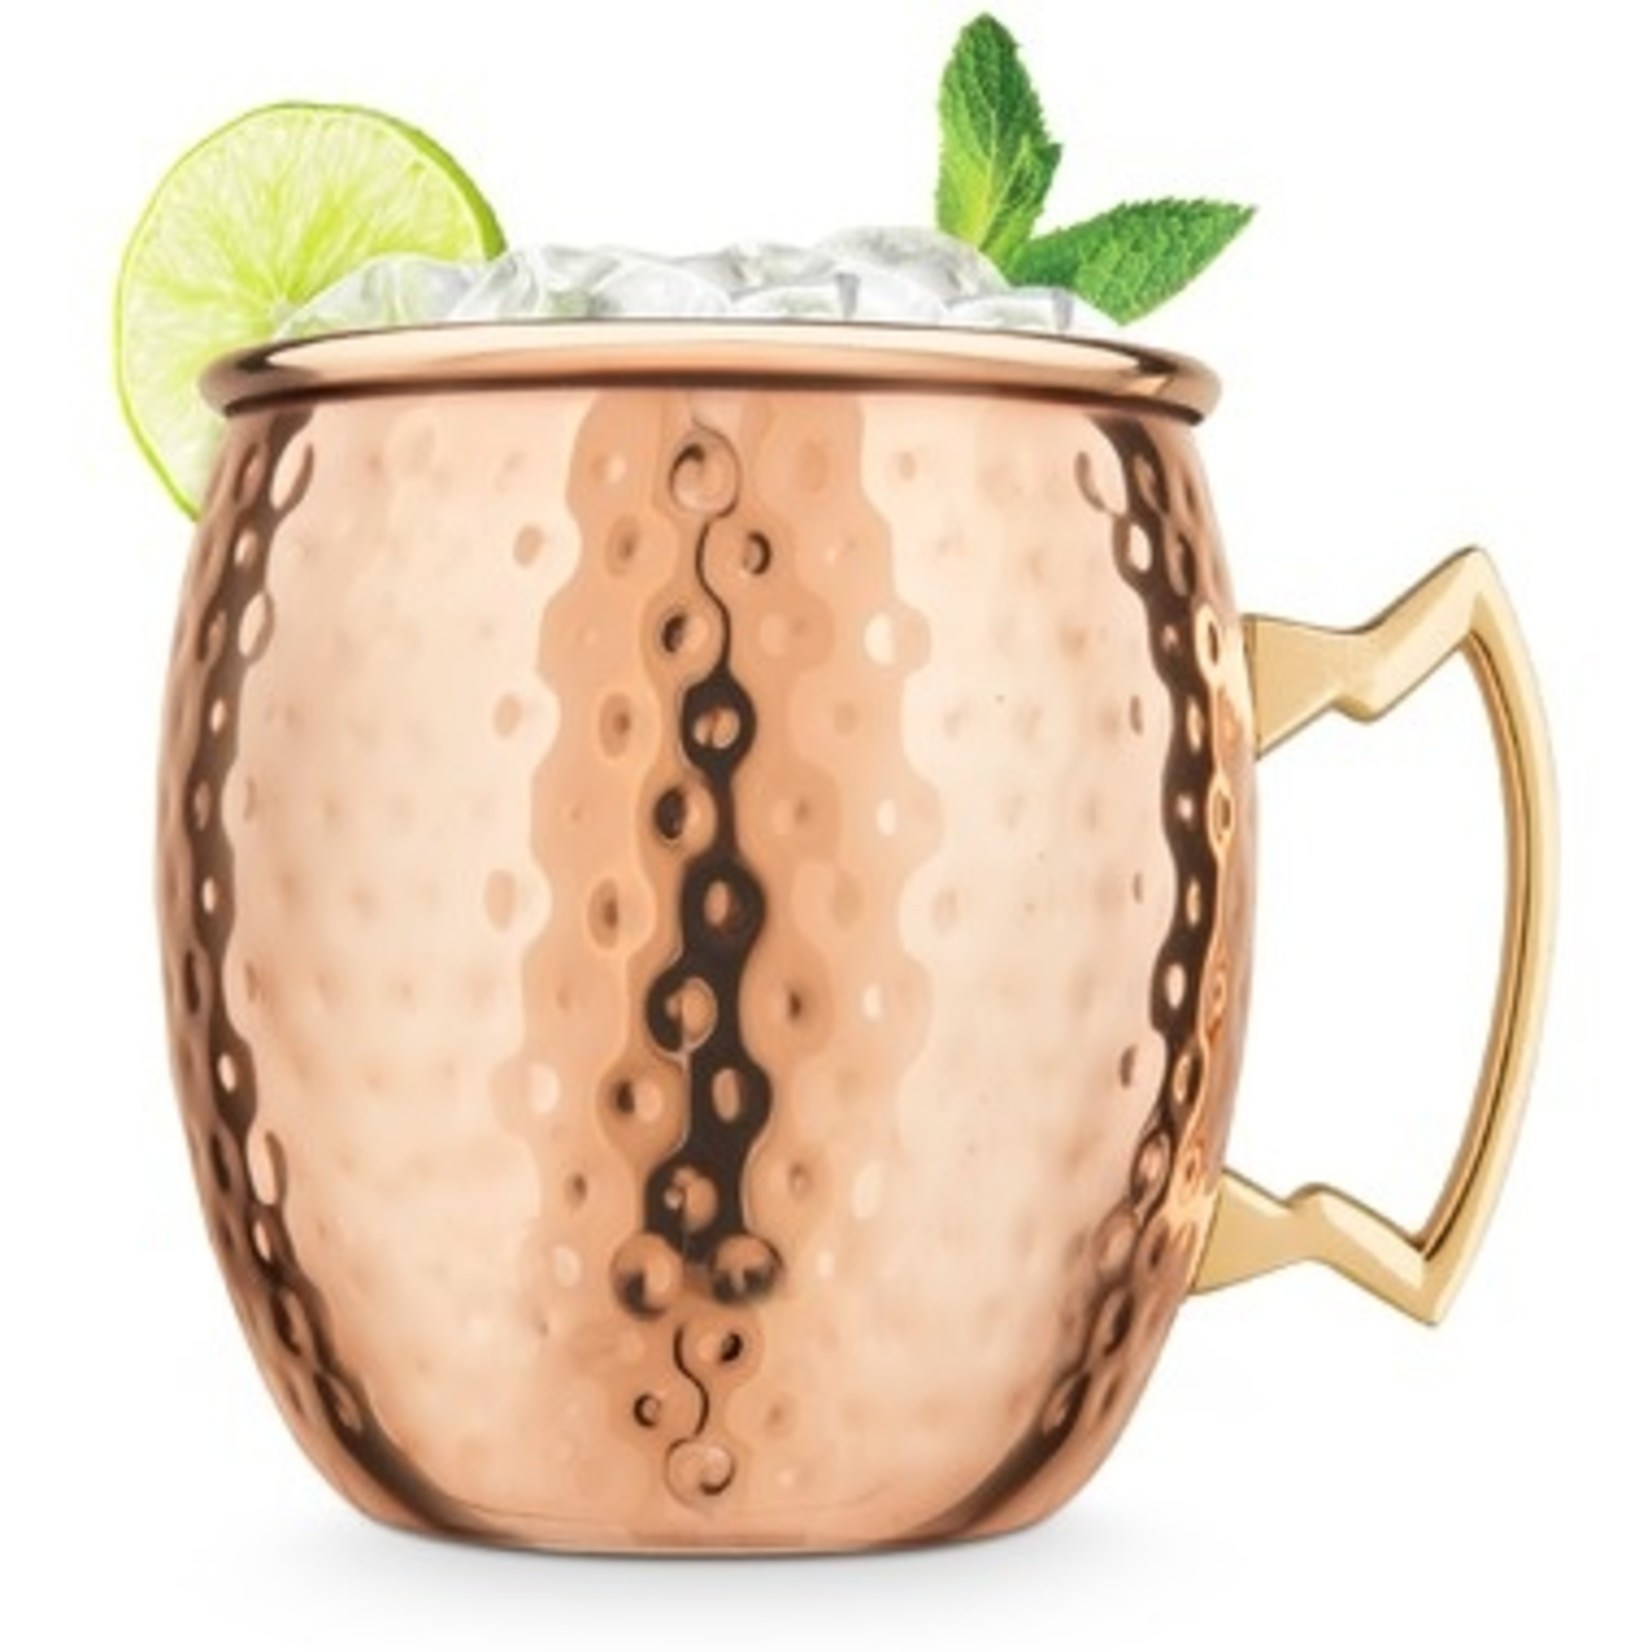 Final Touch Final Touch Moscow Mule Mug Hammered